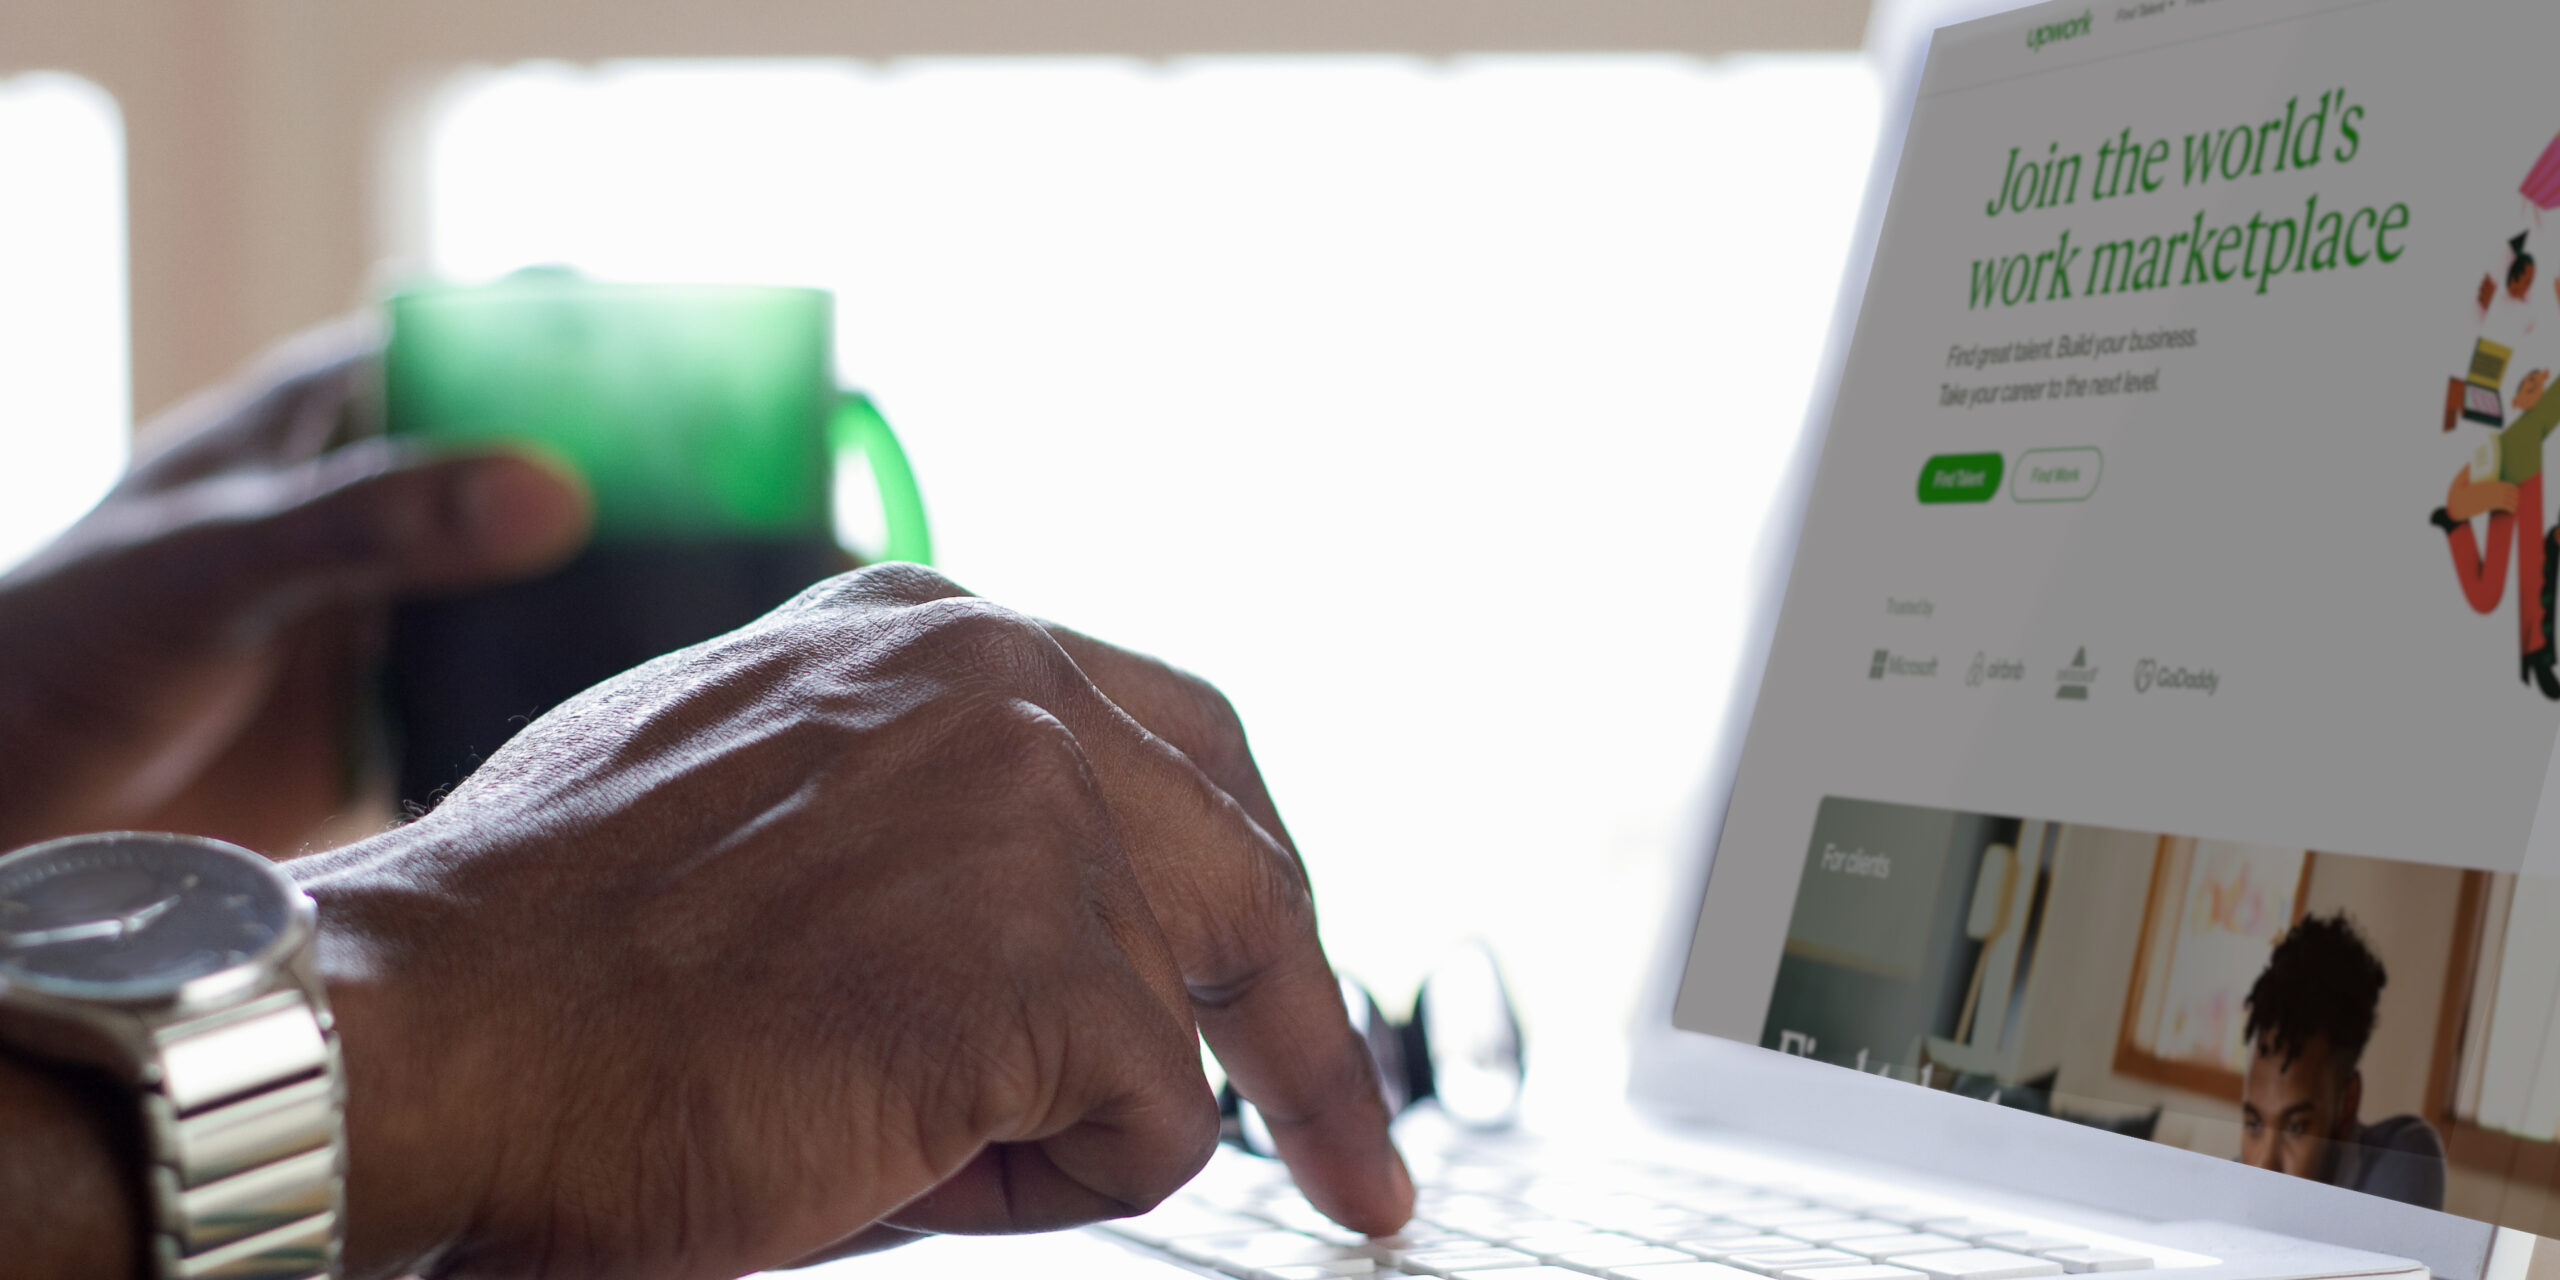 How to succeed on Upwork as a Nigerian: Advice from a 6-figure freelancer